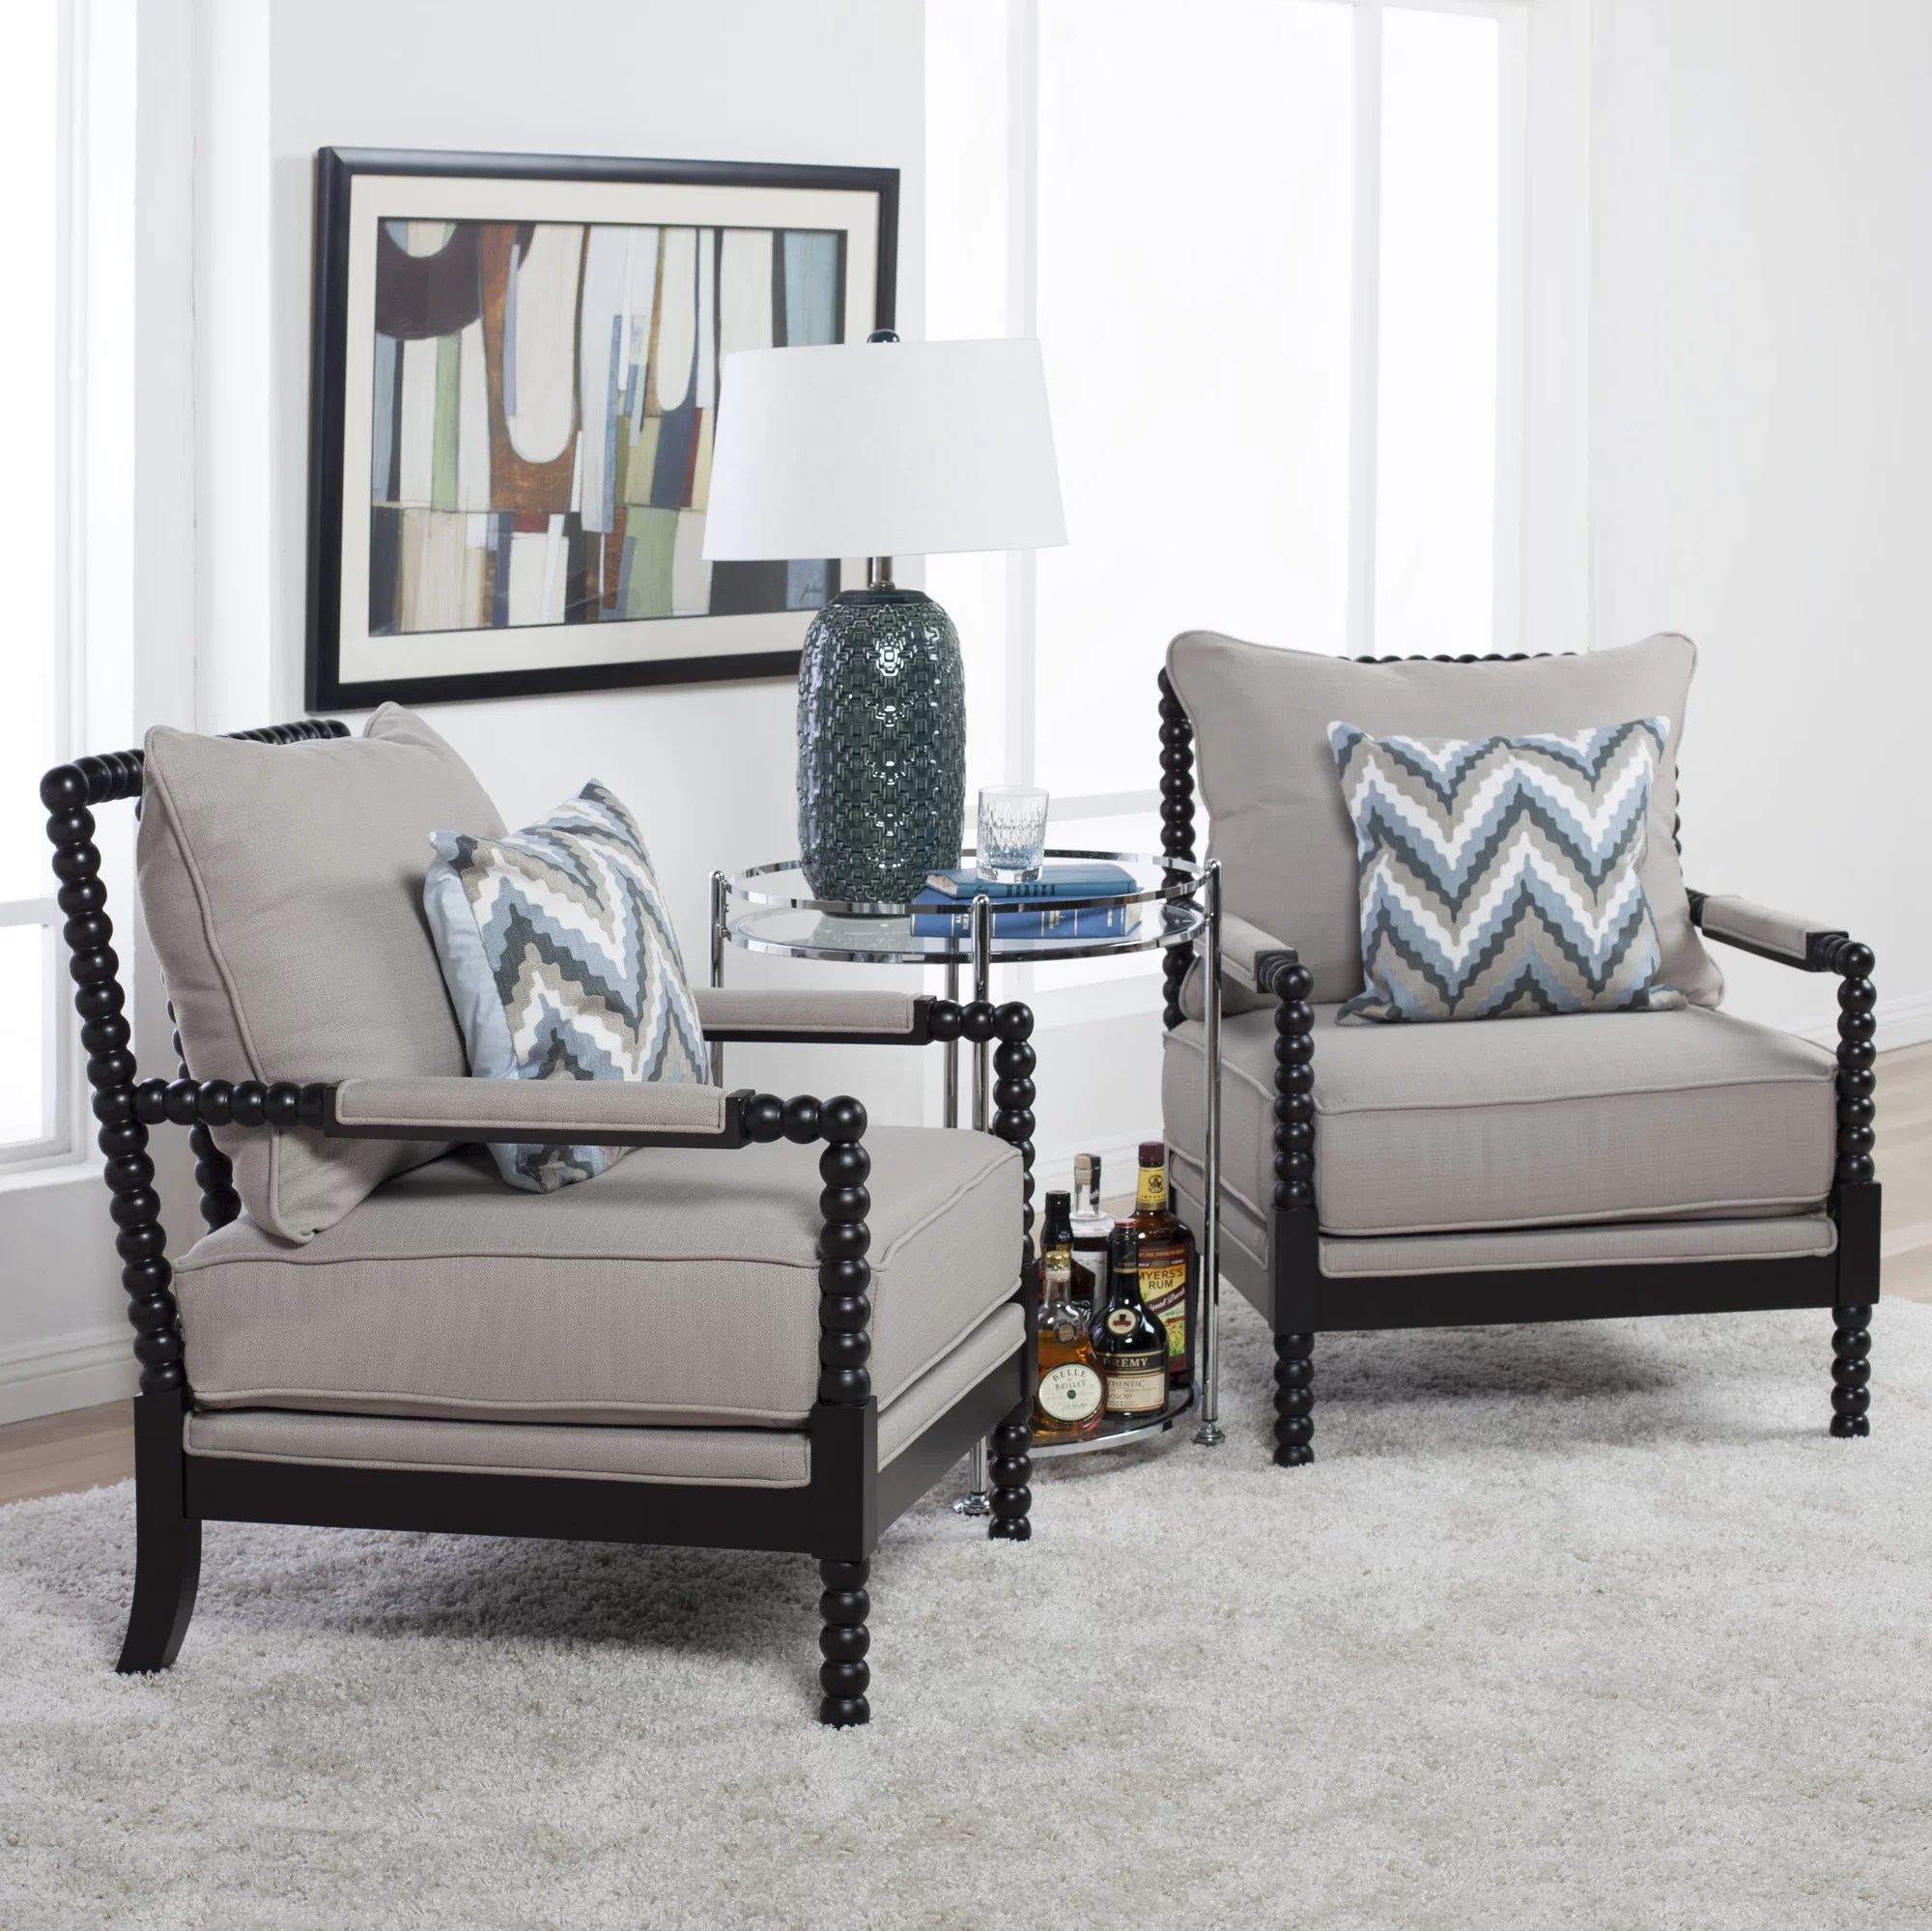 Spindle Arm Chair Studio Designs Home Colonnade Spindle Arm Chair Ebay